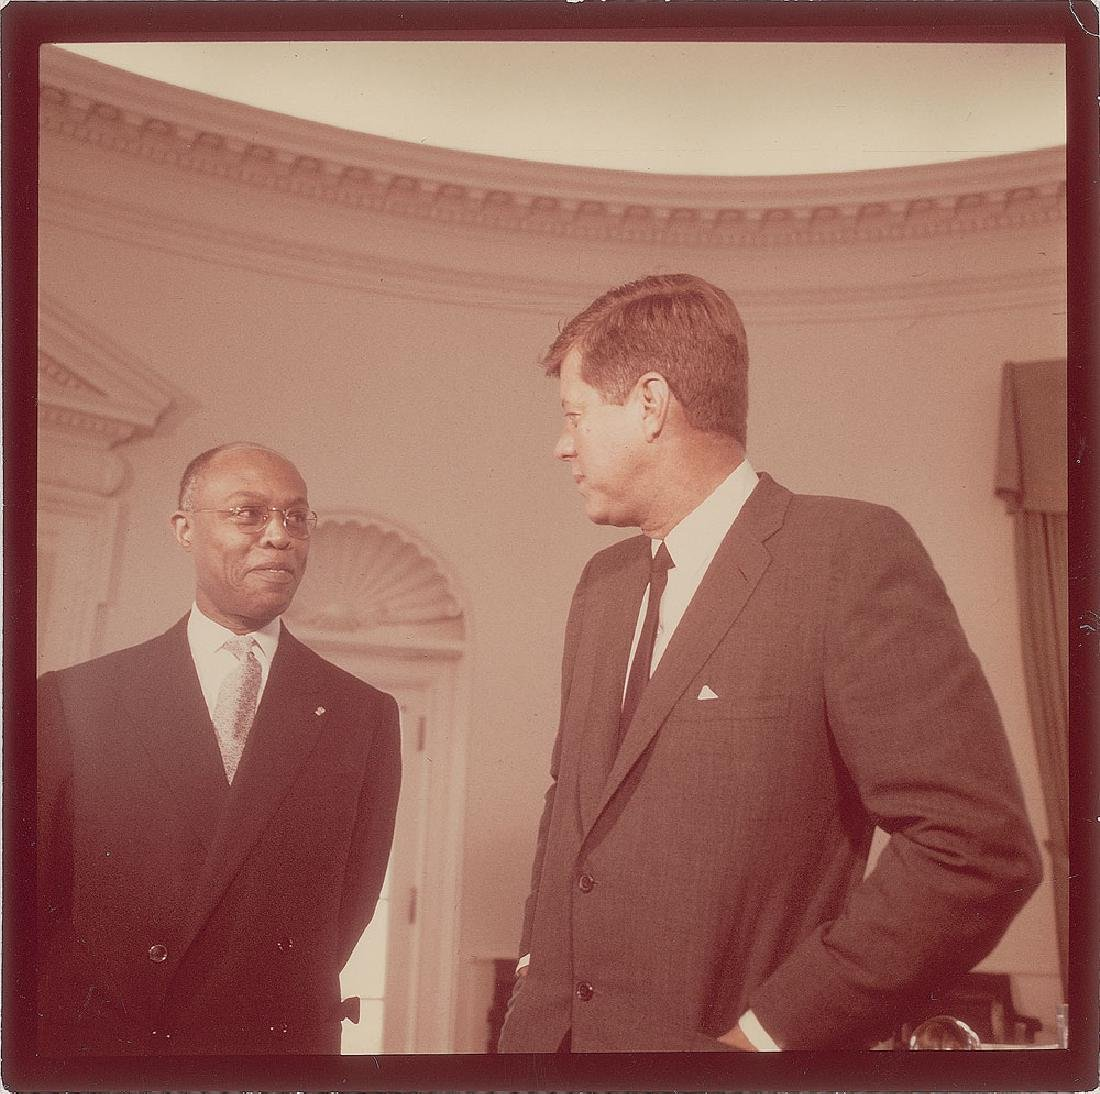 John F. Kennedy and Louis Mars Original Vintage Photograph by Cecil Stoughton